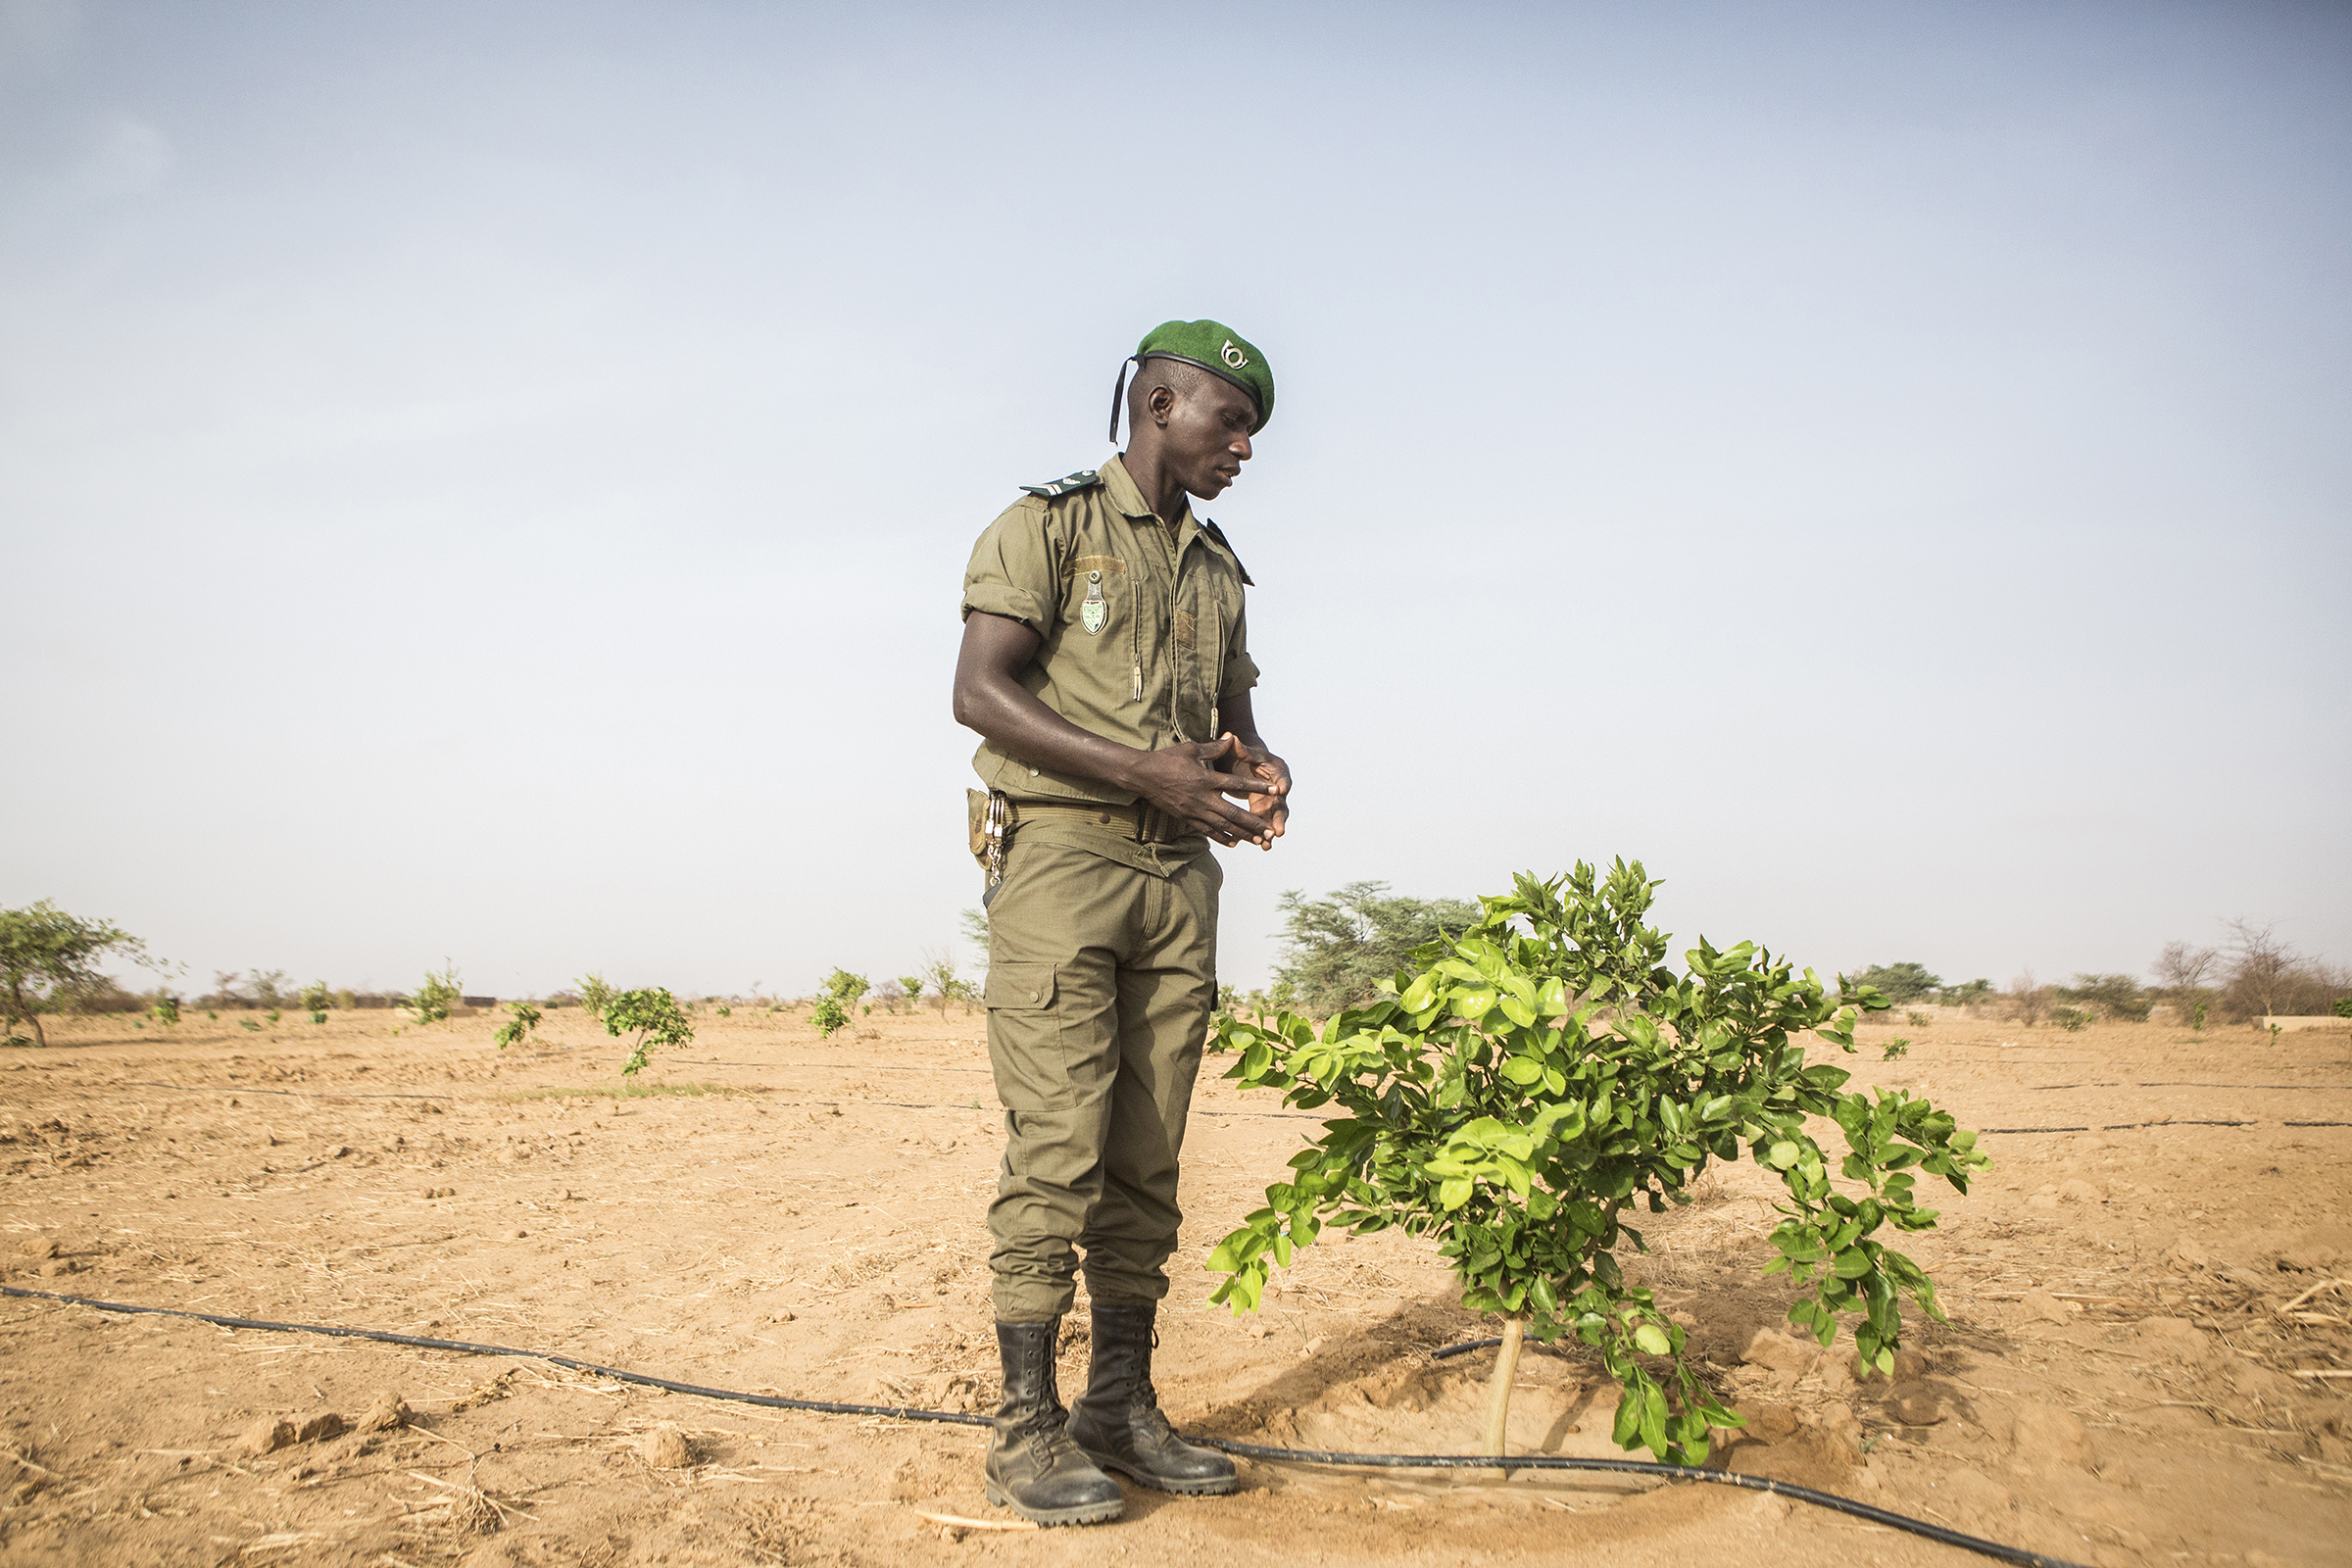 El Haji Gouebiaby, Base Chief for the Great Green Wall, stands beside a growing lemon tree in Mbar Toubab.